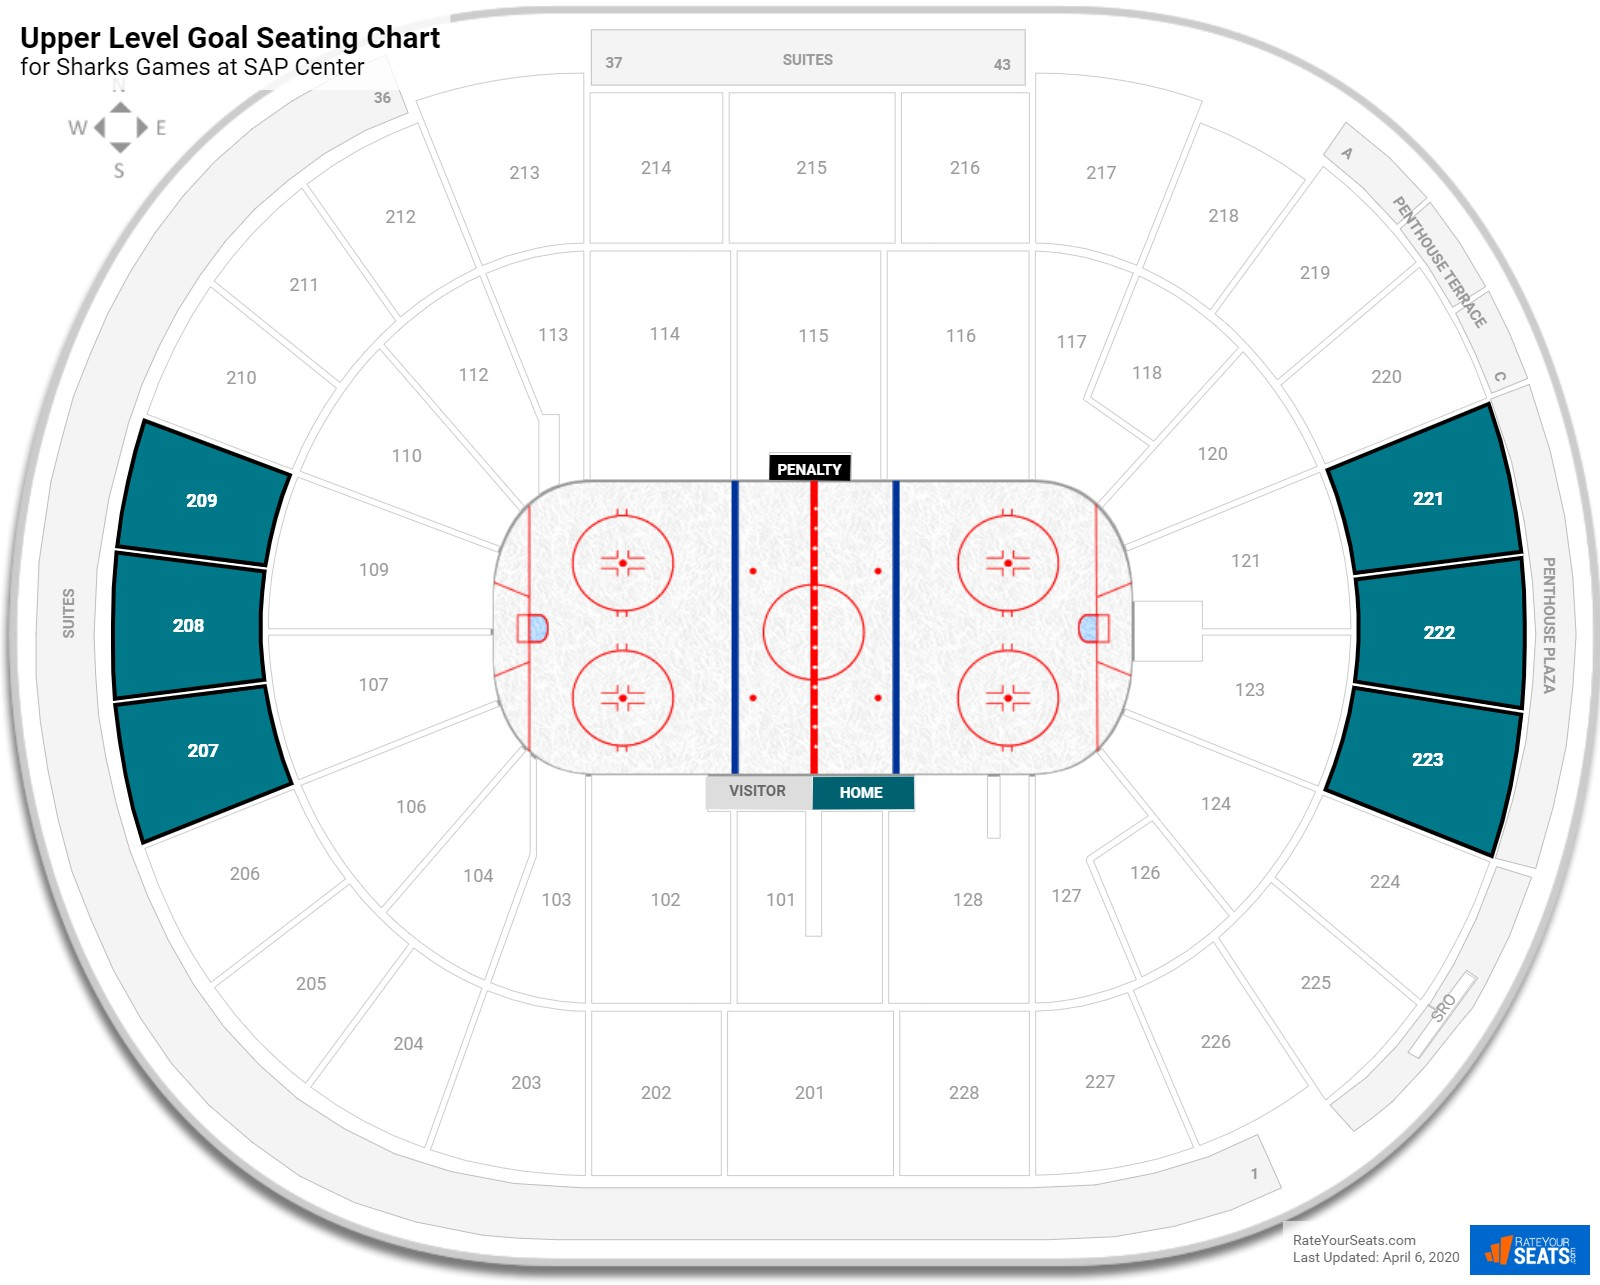 SAP Center Upper Level Behind the Net seating chart